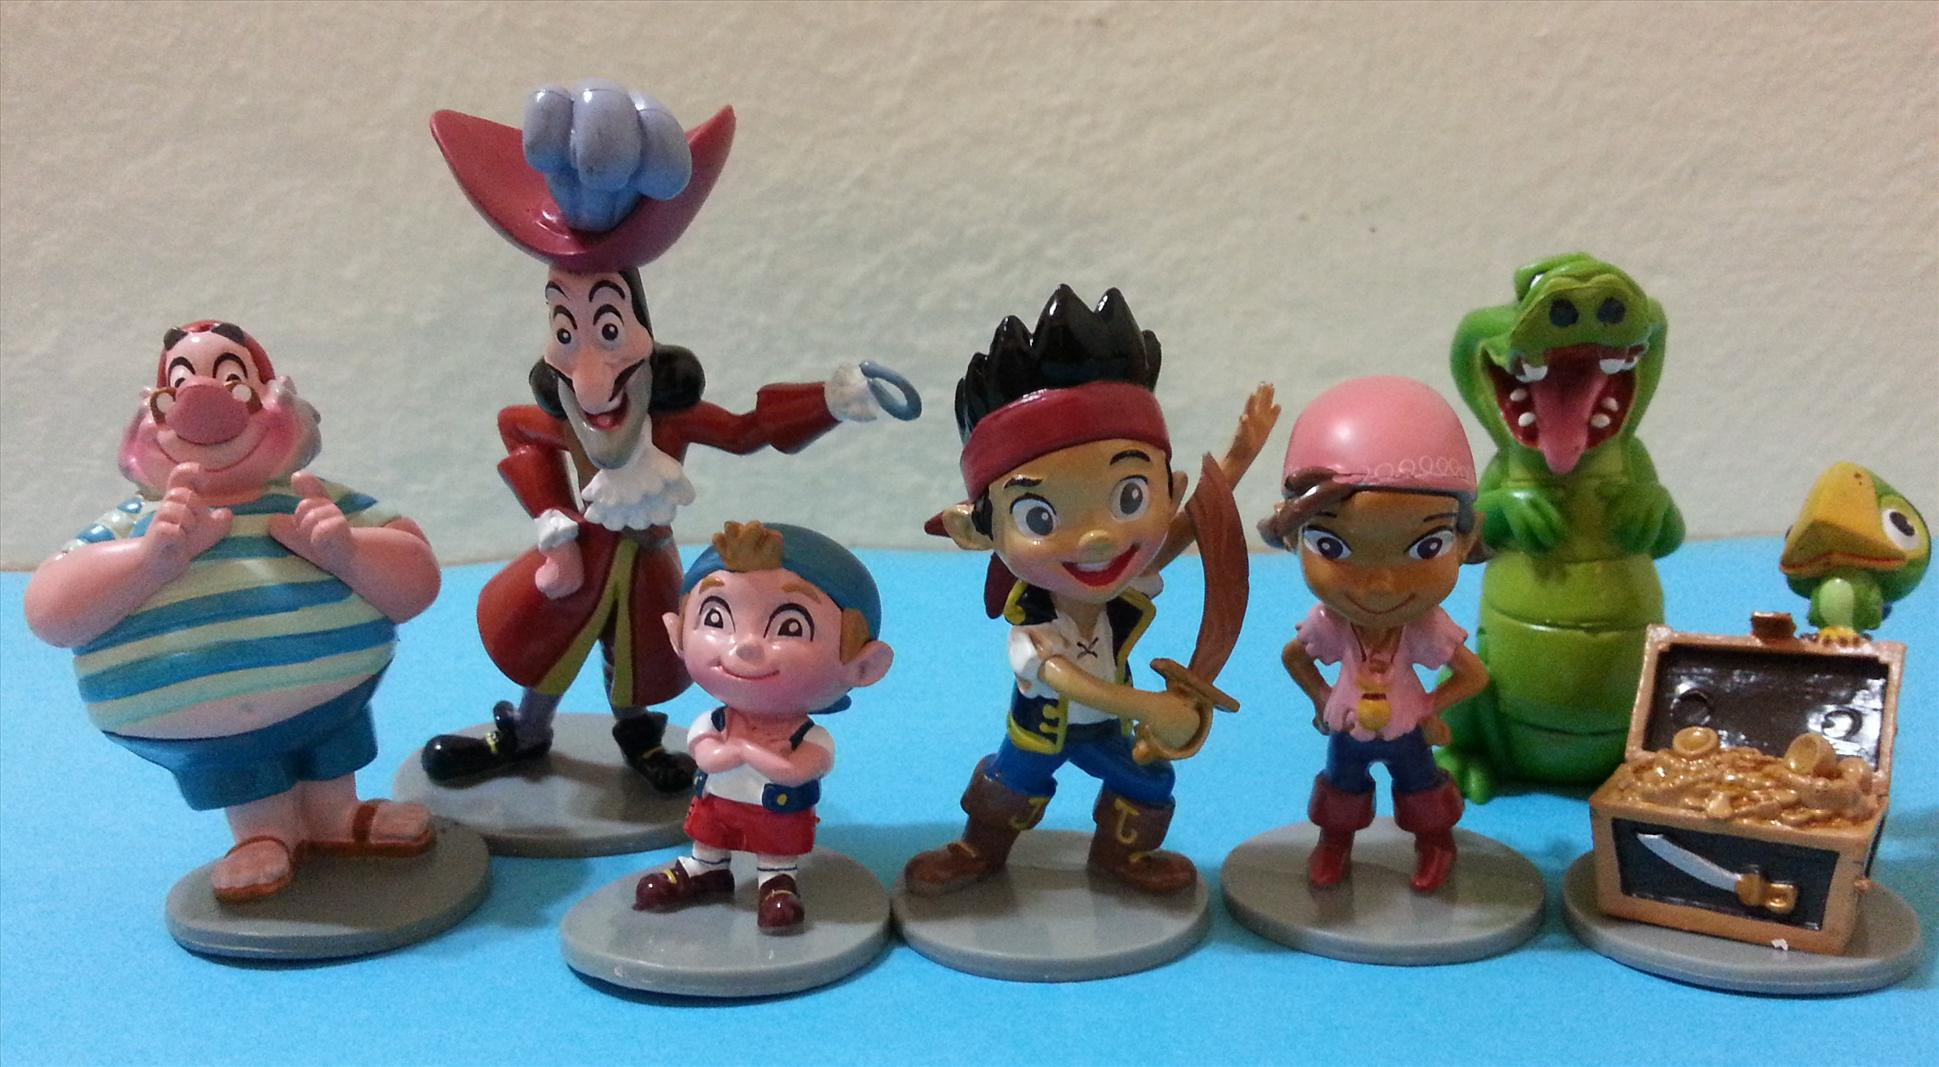 Jake And The Neverland Pirates Cake Topper Figures